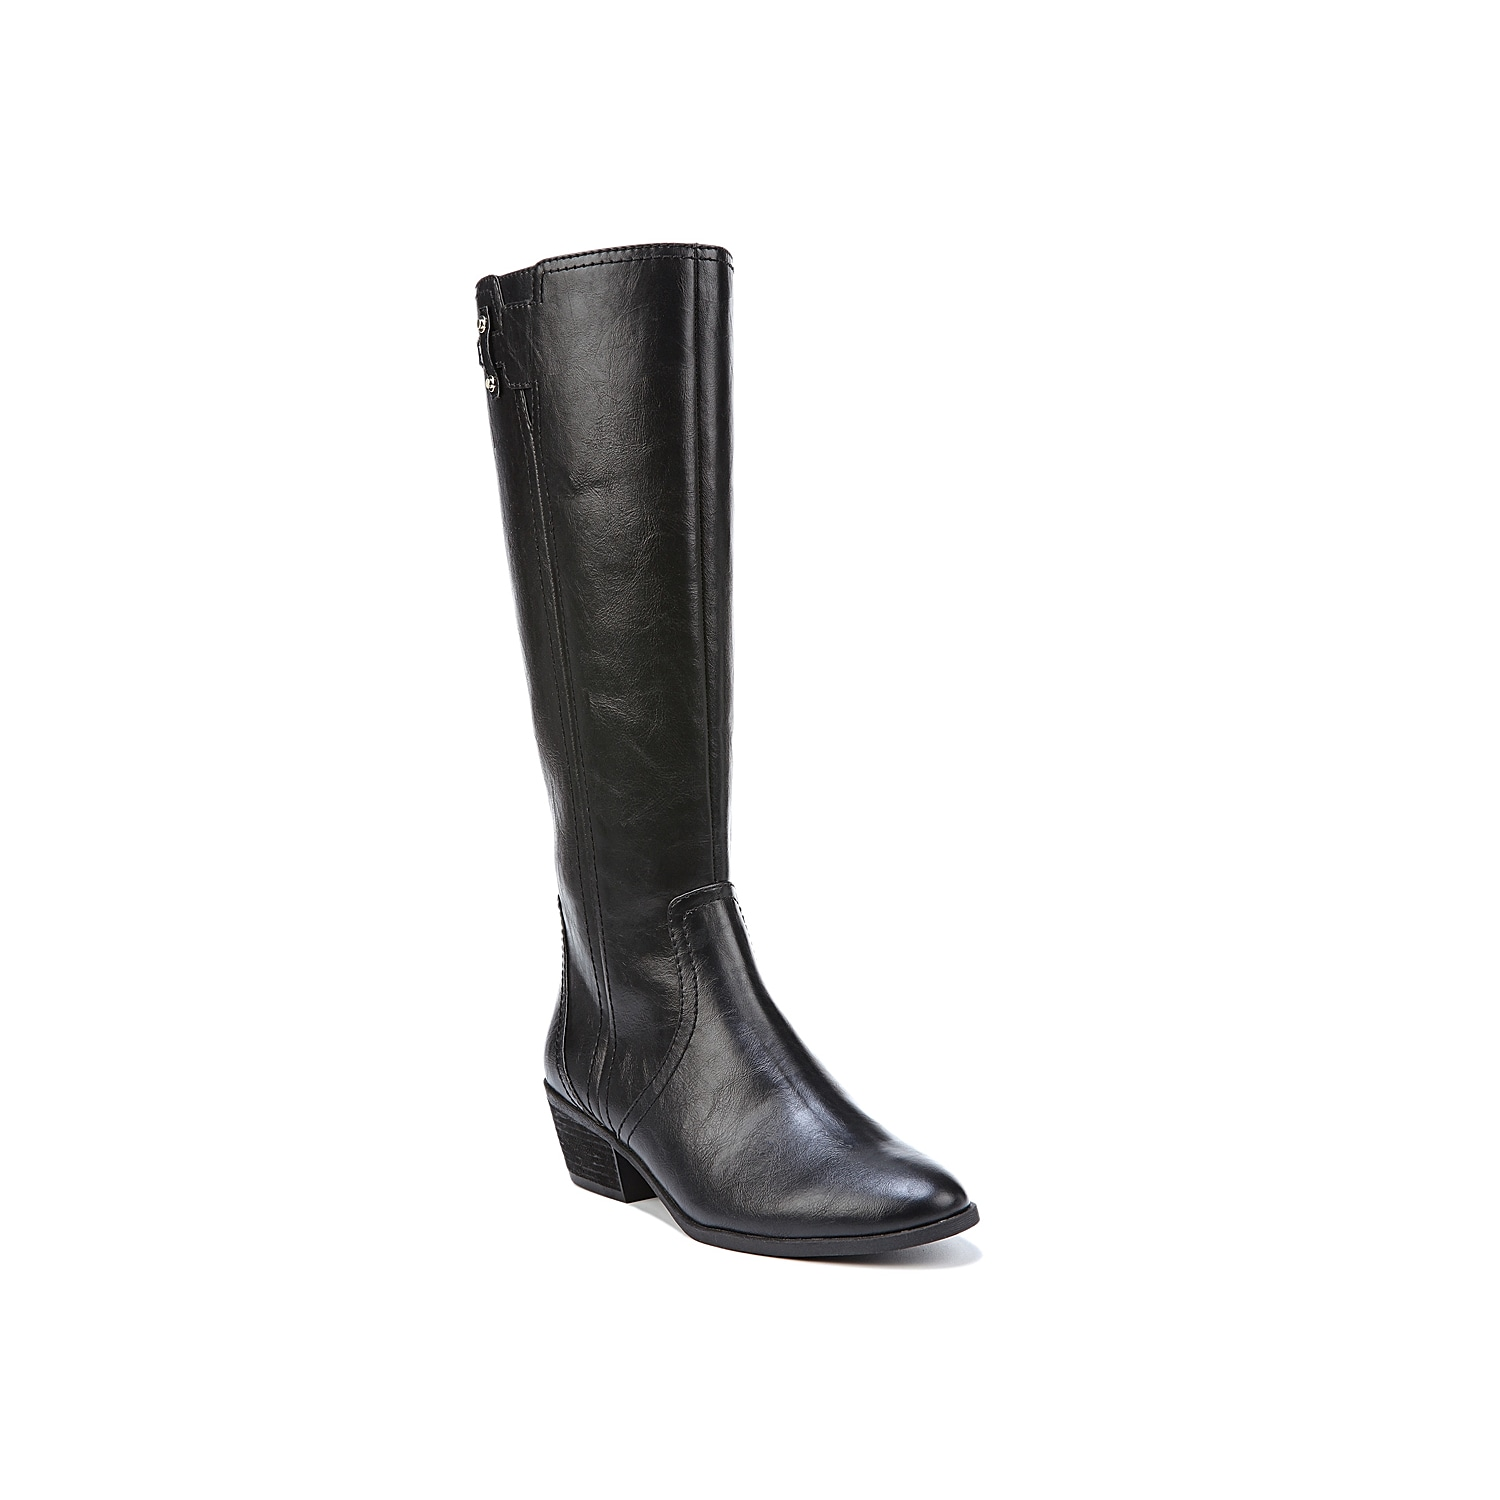 Classic and sophisticated, these comfortable leather boots from Dr. Scholl\\\'s will become a fast favorite in your fall wardrobe. The Brilliance knee high boot is a casual tall boot with minimal details for maximum style and versatility!Click here for Boot Measuring Guide.